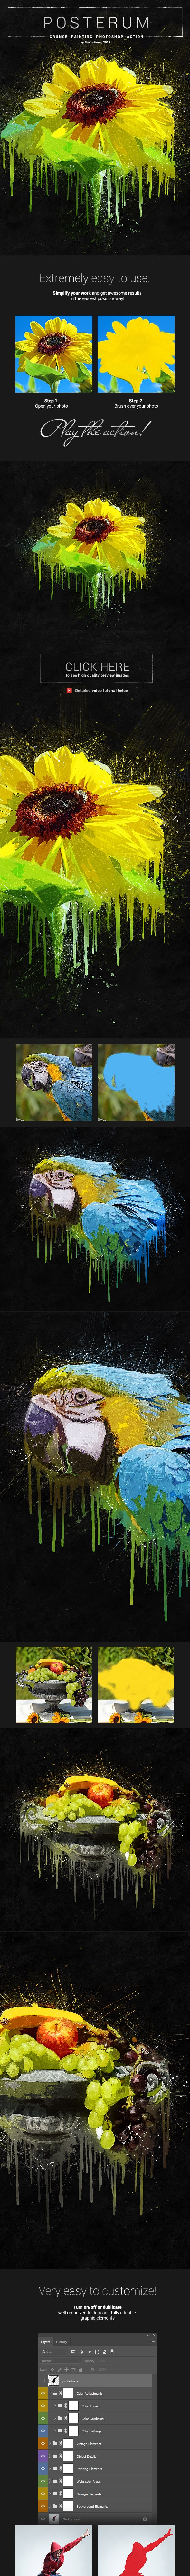 Grunge Painting - Posterum - Photoshop Action - Photo Effects Actions